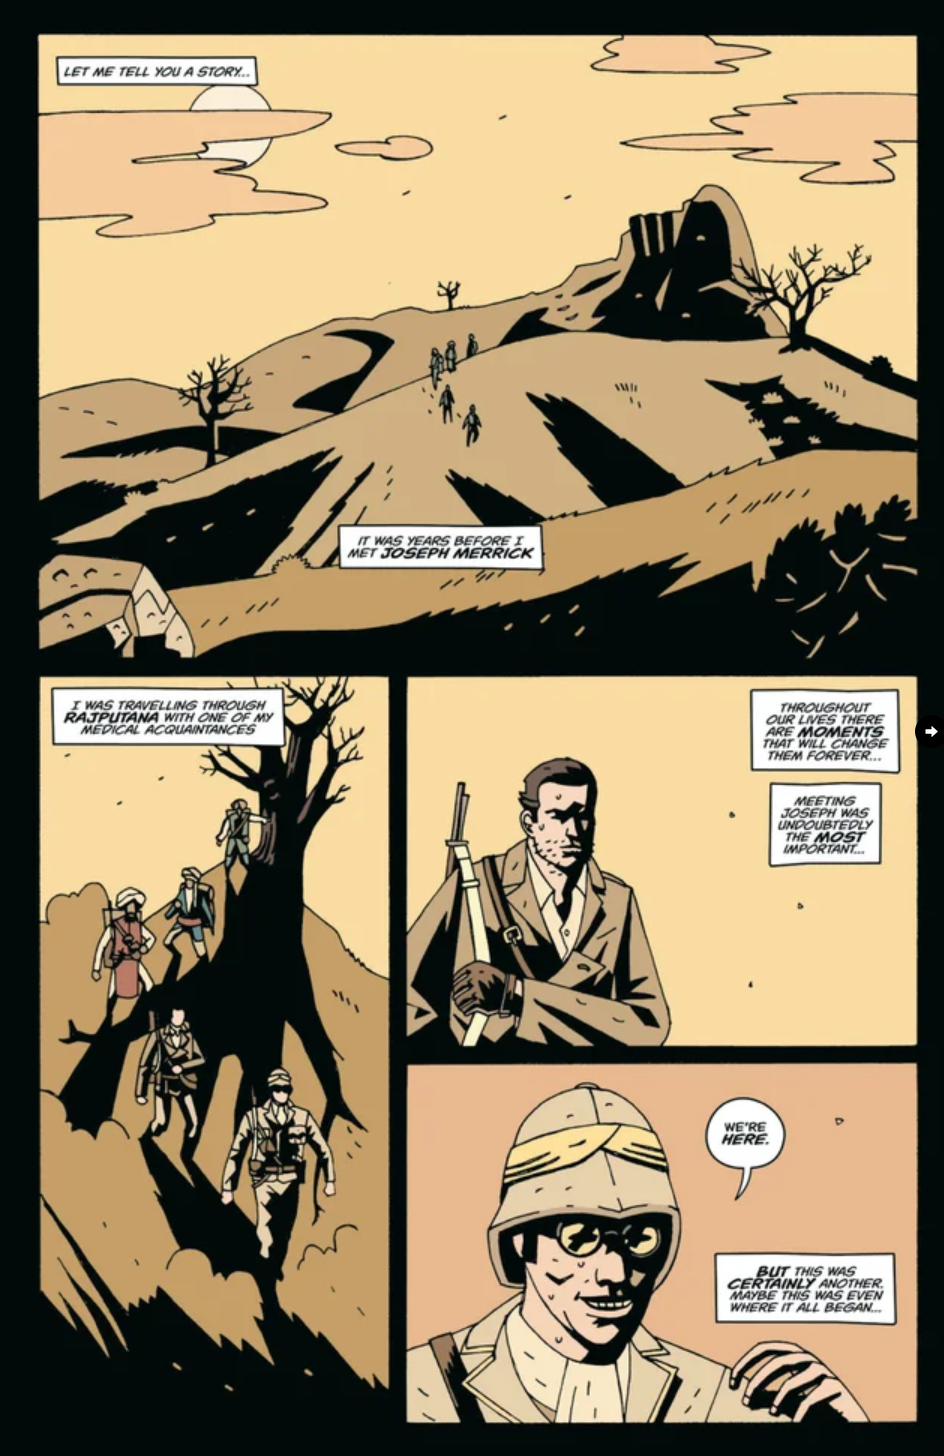 Treves: A Restless Night, issue #1, Page 1, self-published, Luke Parker